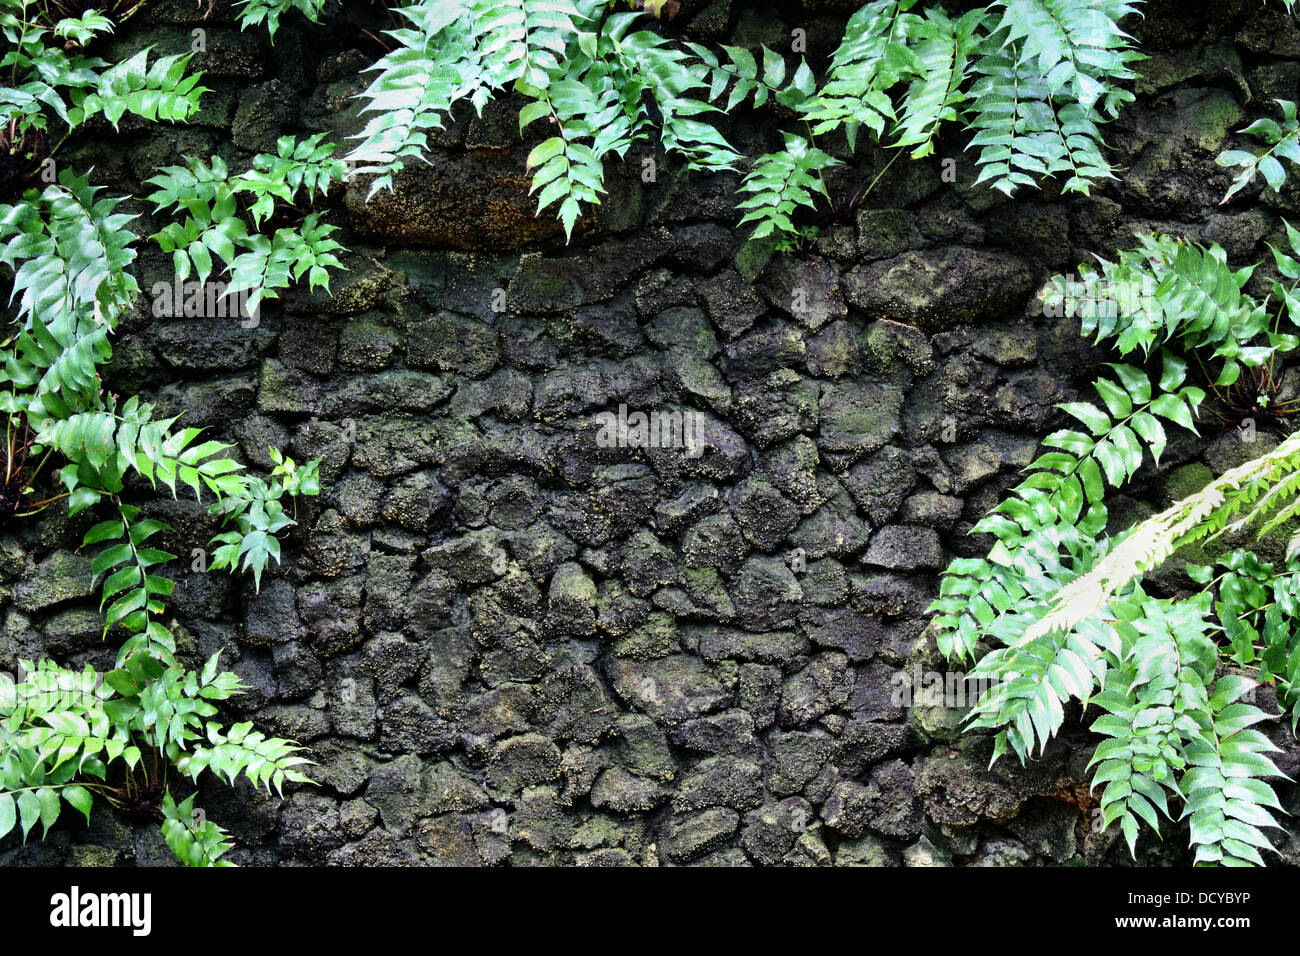 Moss And Fern On Stone Wall Jungle Tropical Forest